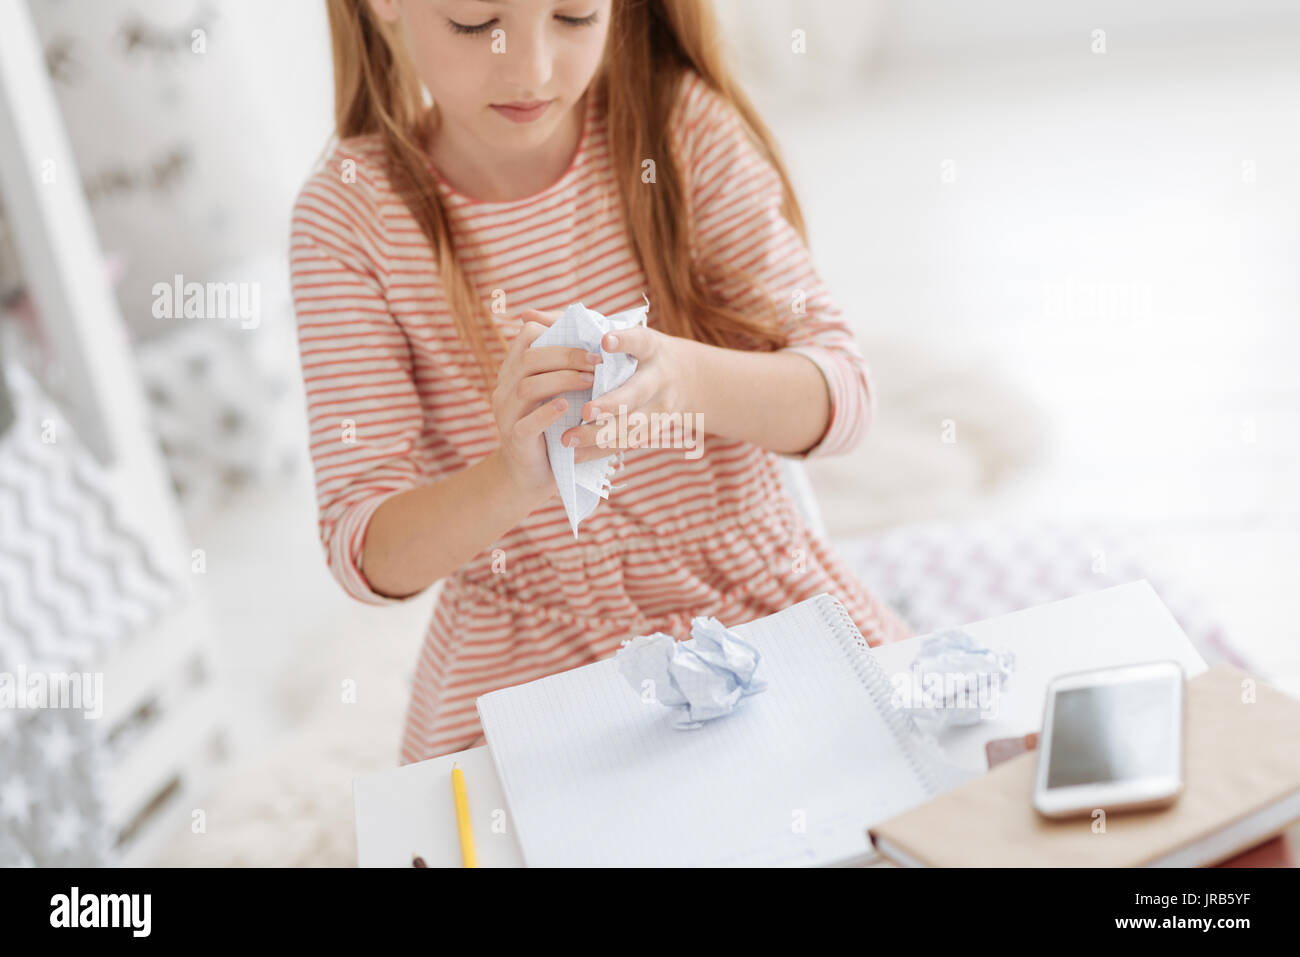 Close up of child struggling with homework - Stock Image